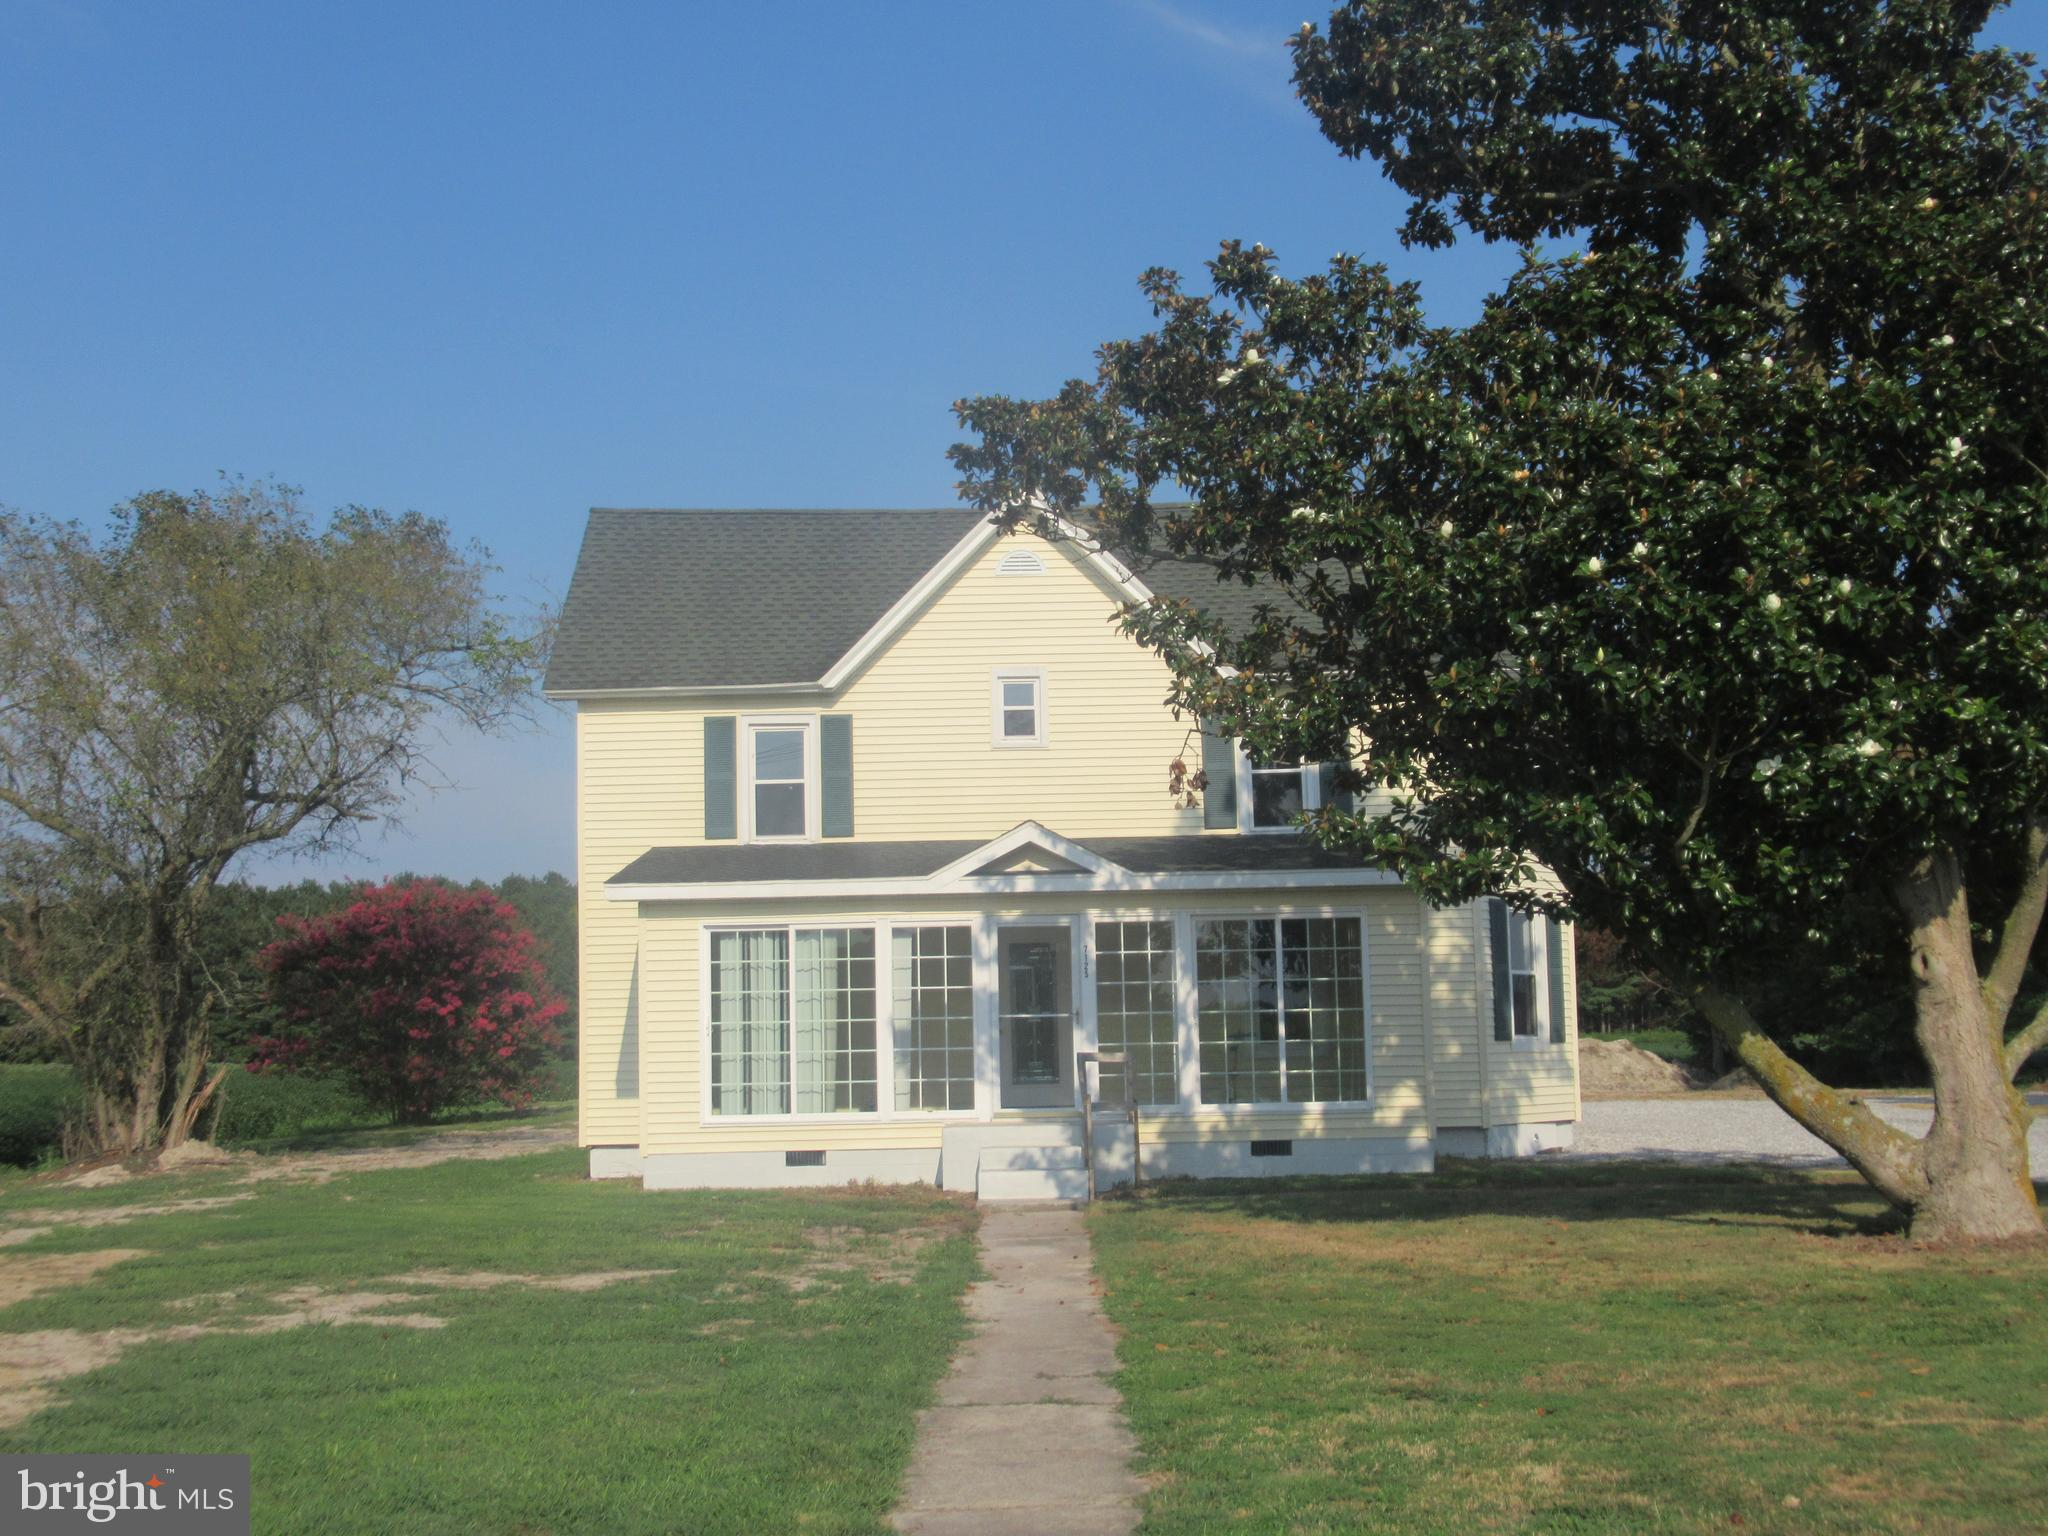 7125 OLD WESTOVER MARION ROAD, WESTOVER, MD 21871